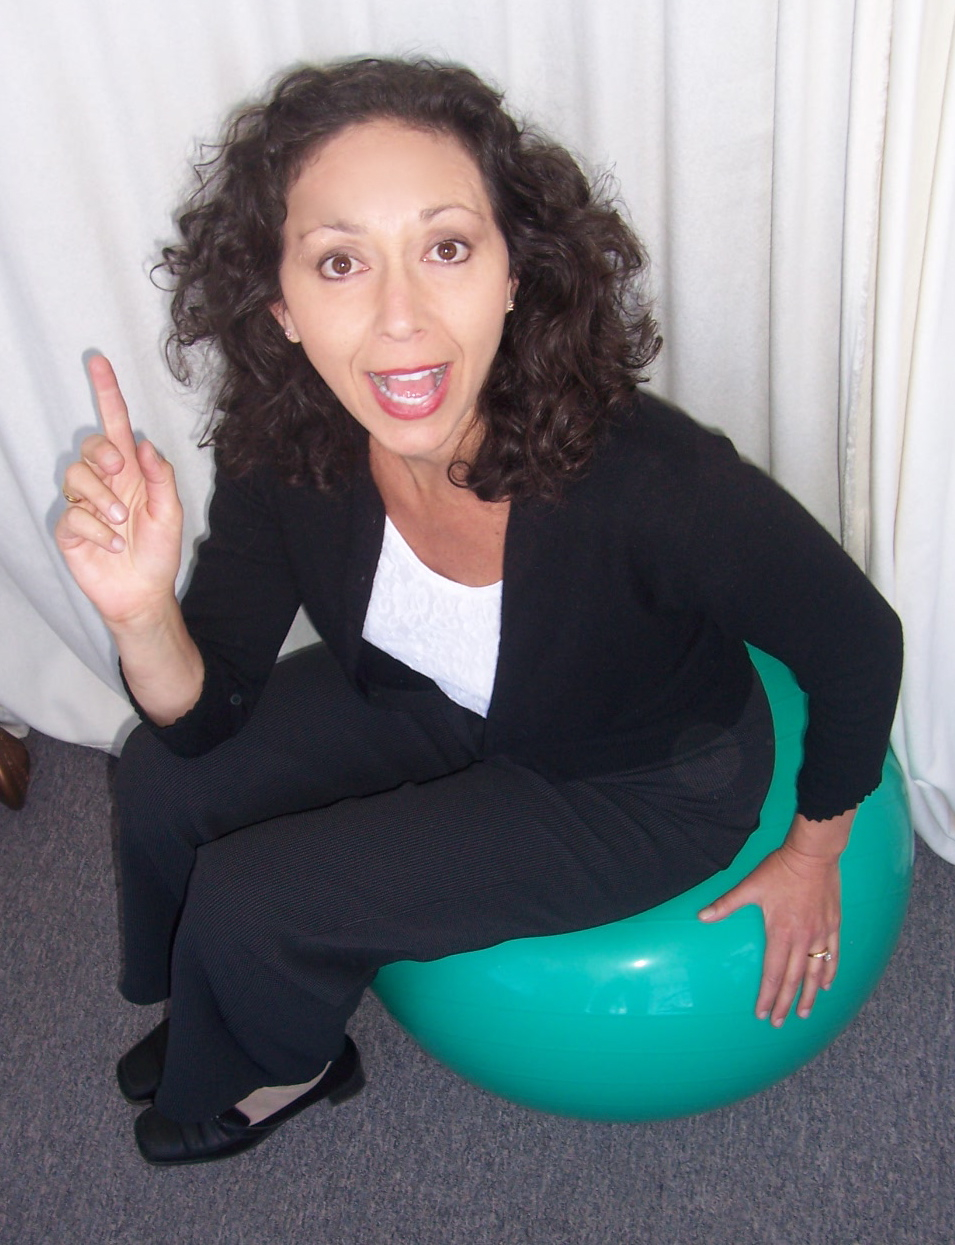 Irene Diamond On Ball Pointing Up- Active Myofascial Therapy The Diamond Method